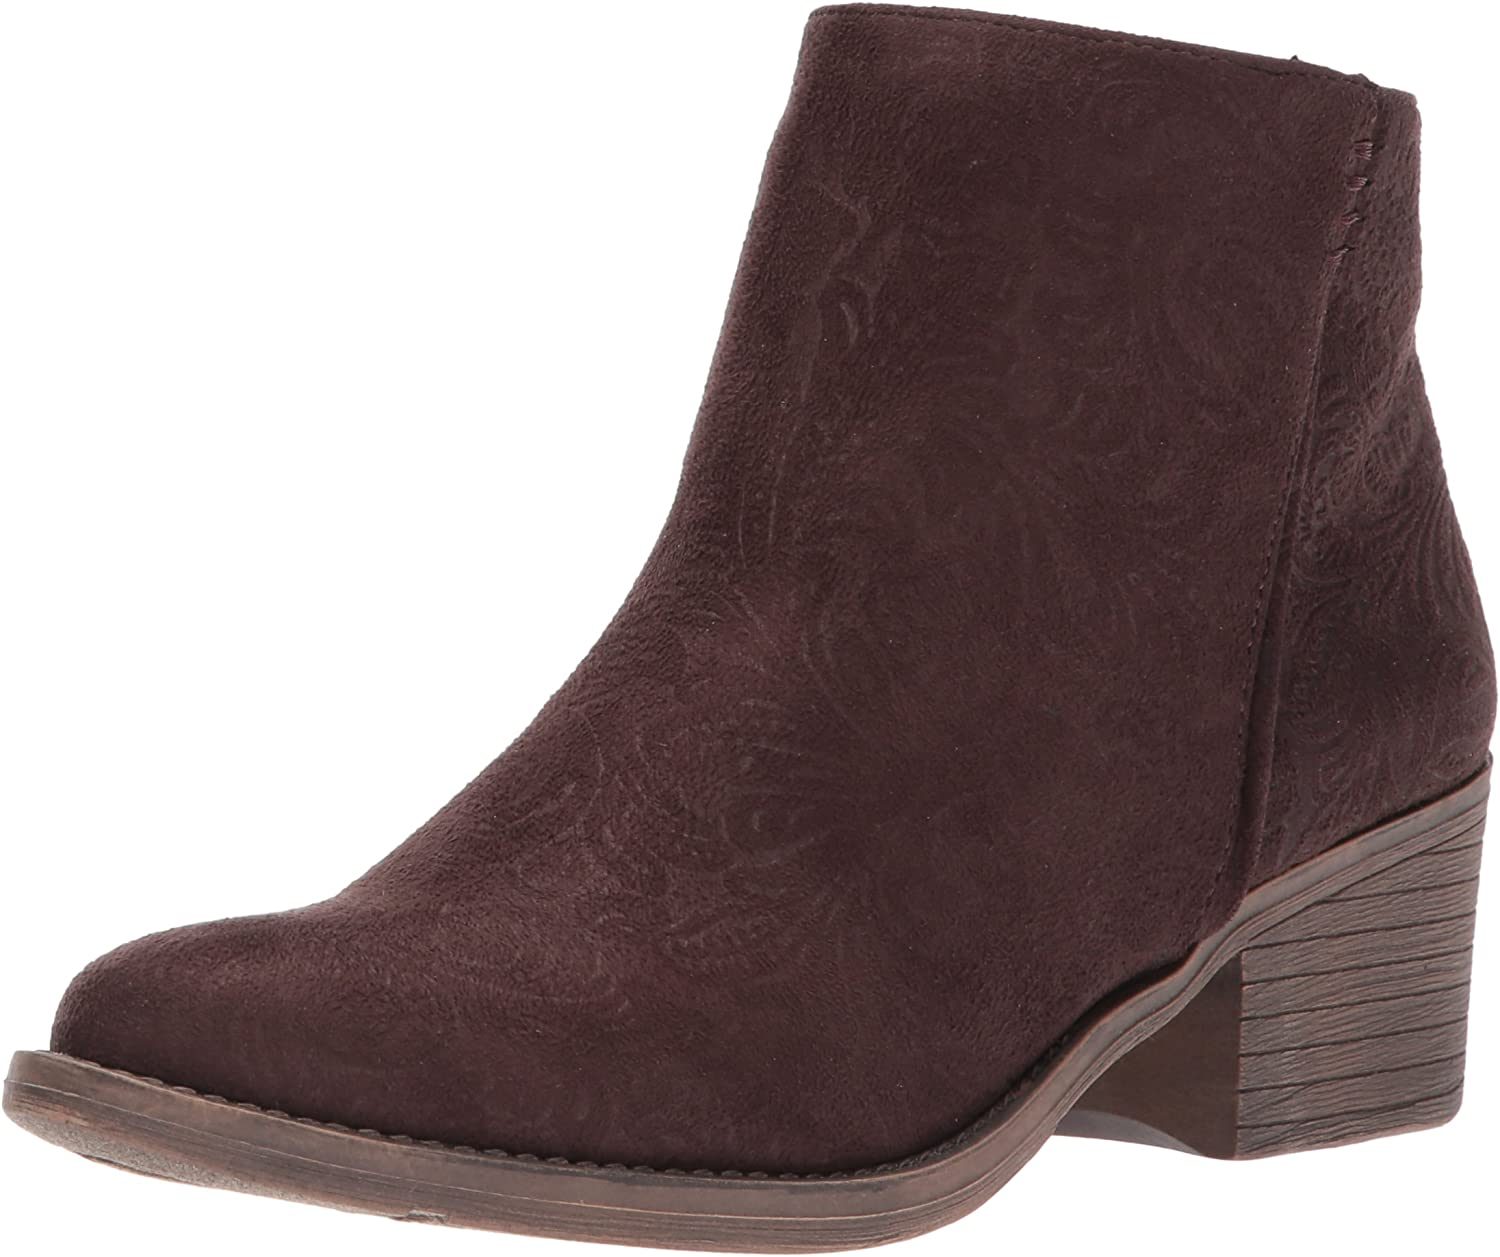 VOLATILE Womens Liya Ankle Bootie